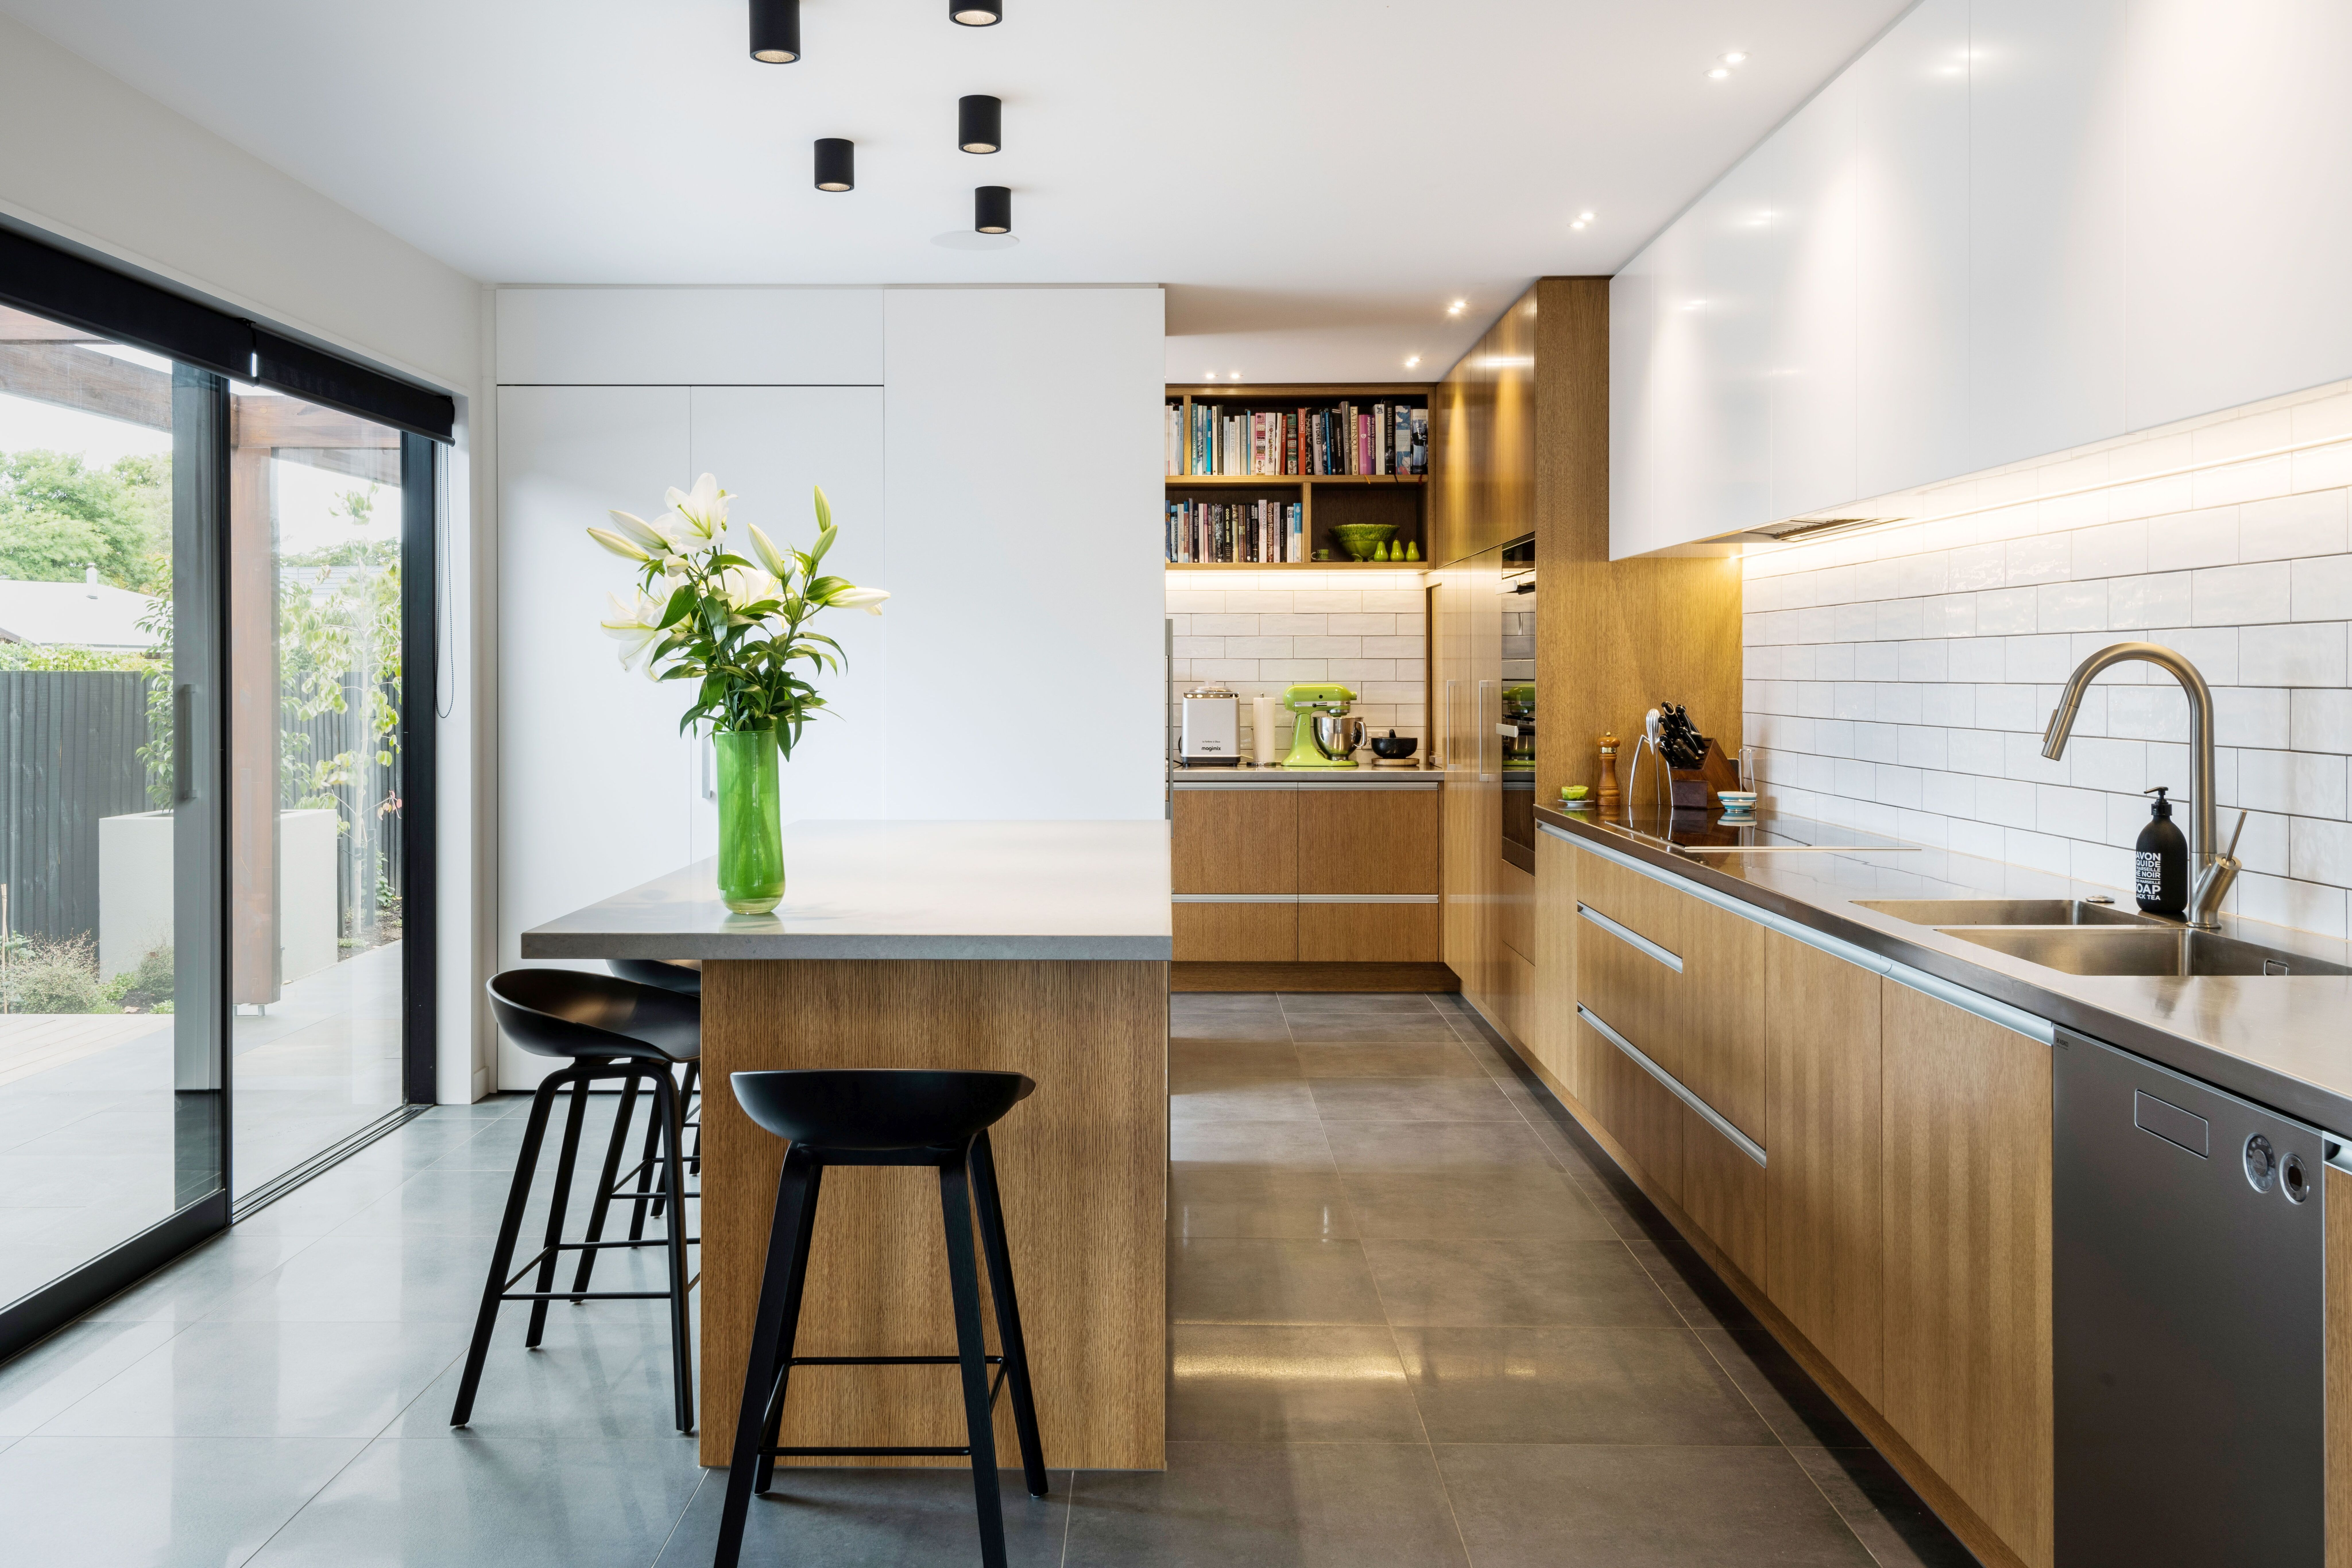 Bestwood Veneer Interior Panels Kitchens And Cabinetry Nz Archipro